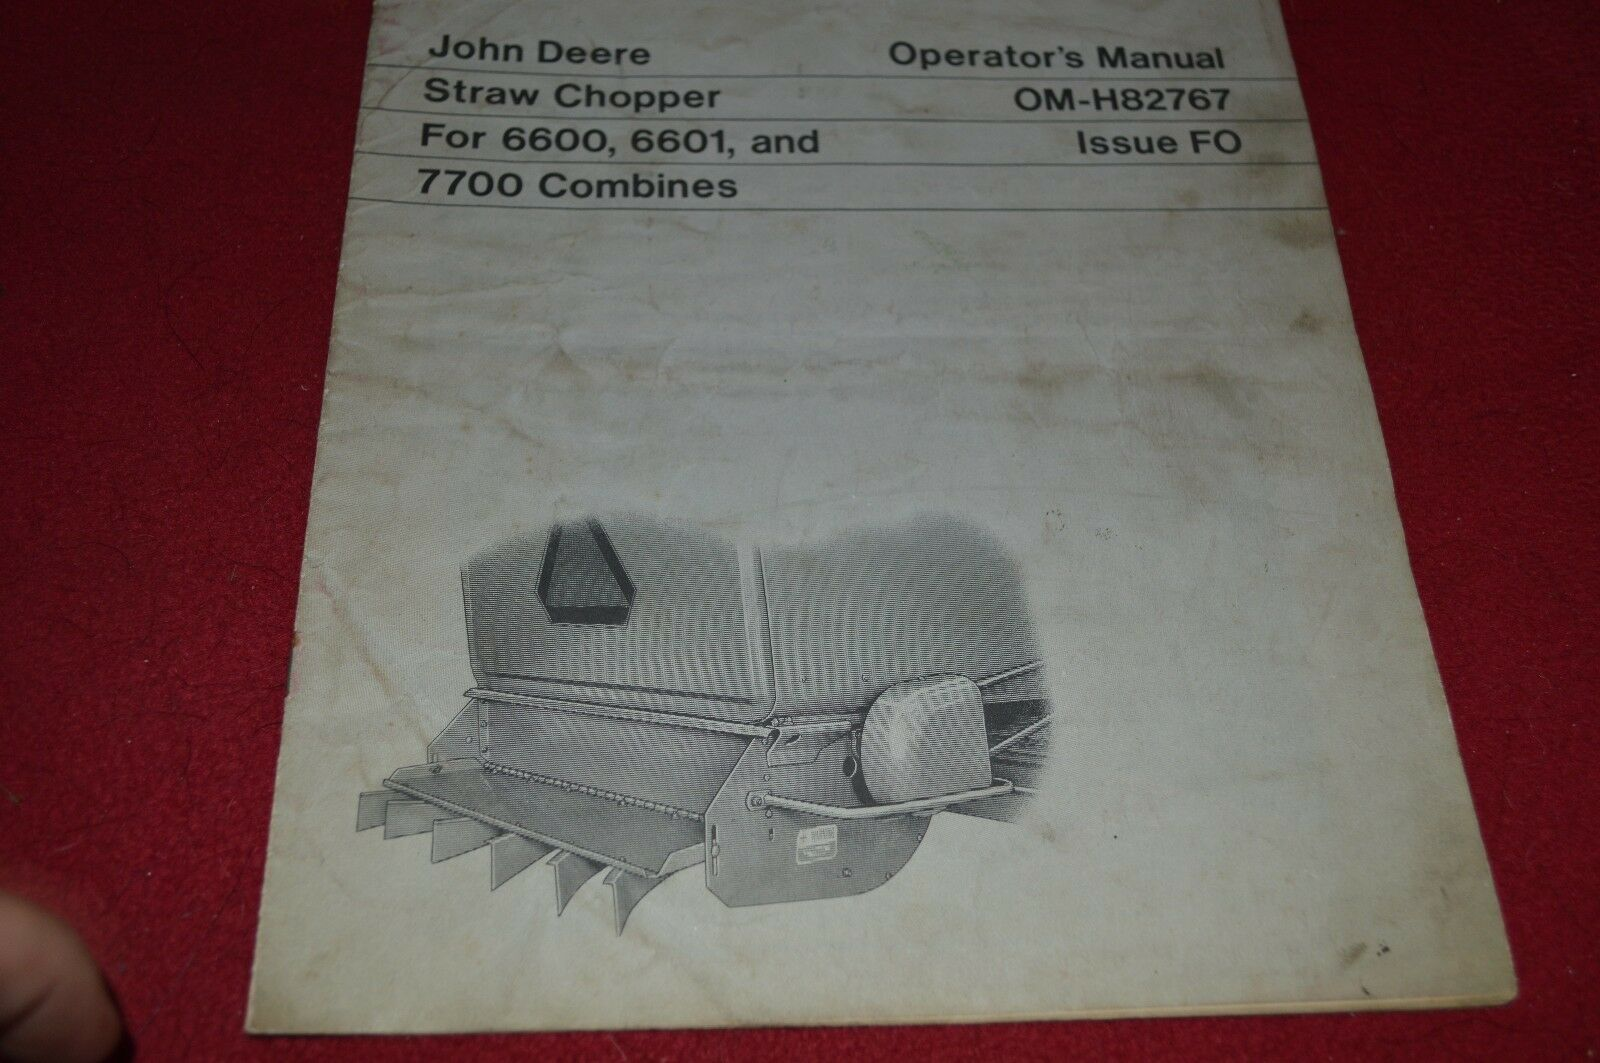 John Deere Straw Chopper For 6600 7700 Combine Operator's Manual DCPA4 1 of  1Only 1 available ...